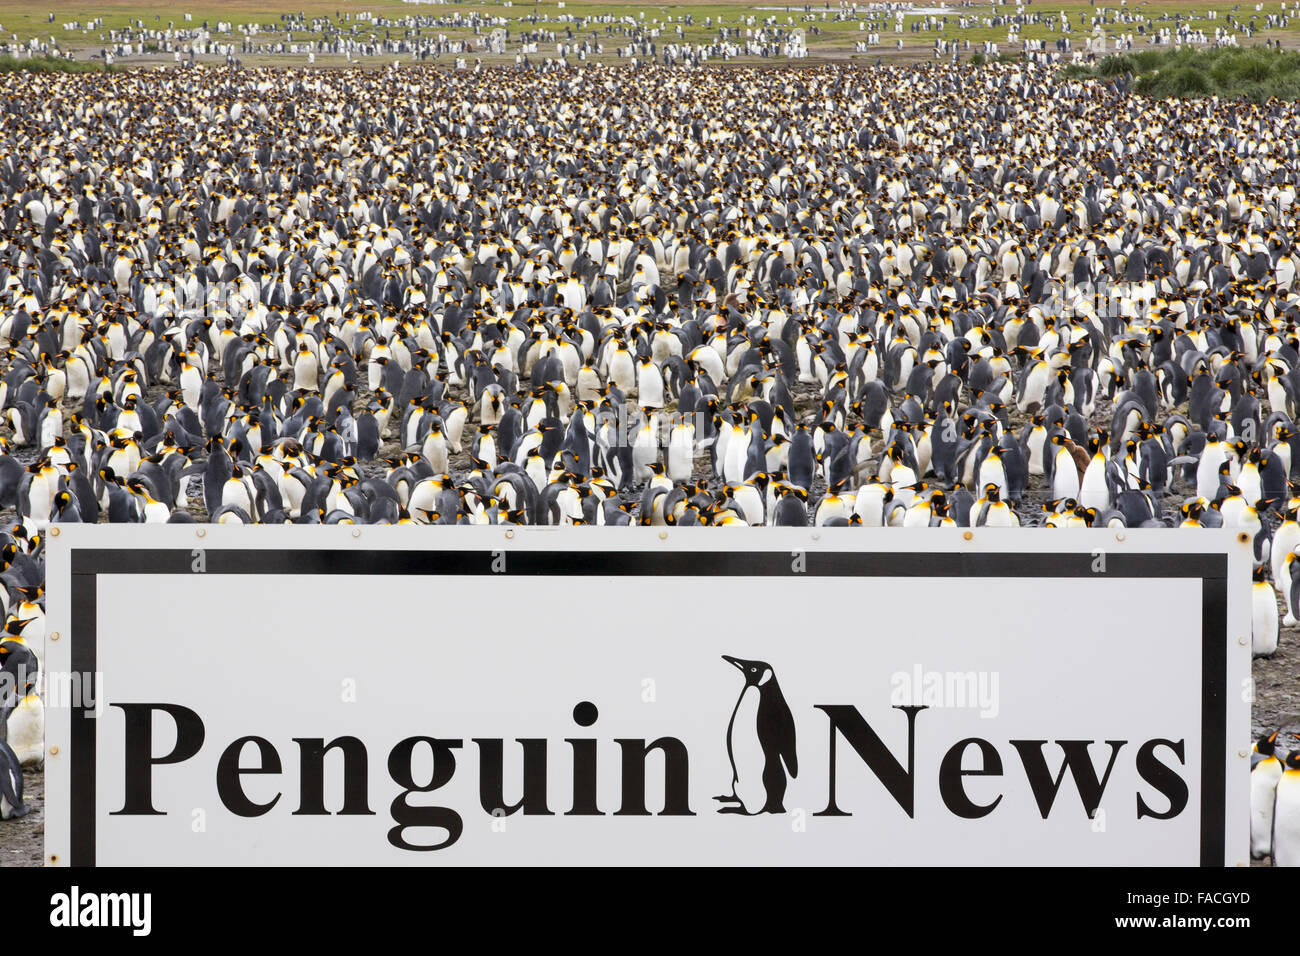 King Penguins in the world's second largest King Penguin colony on Salisbury Plain, South Georgia, Southern - Stock Image